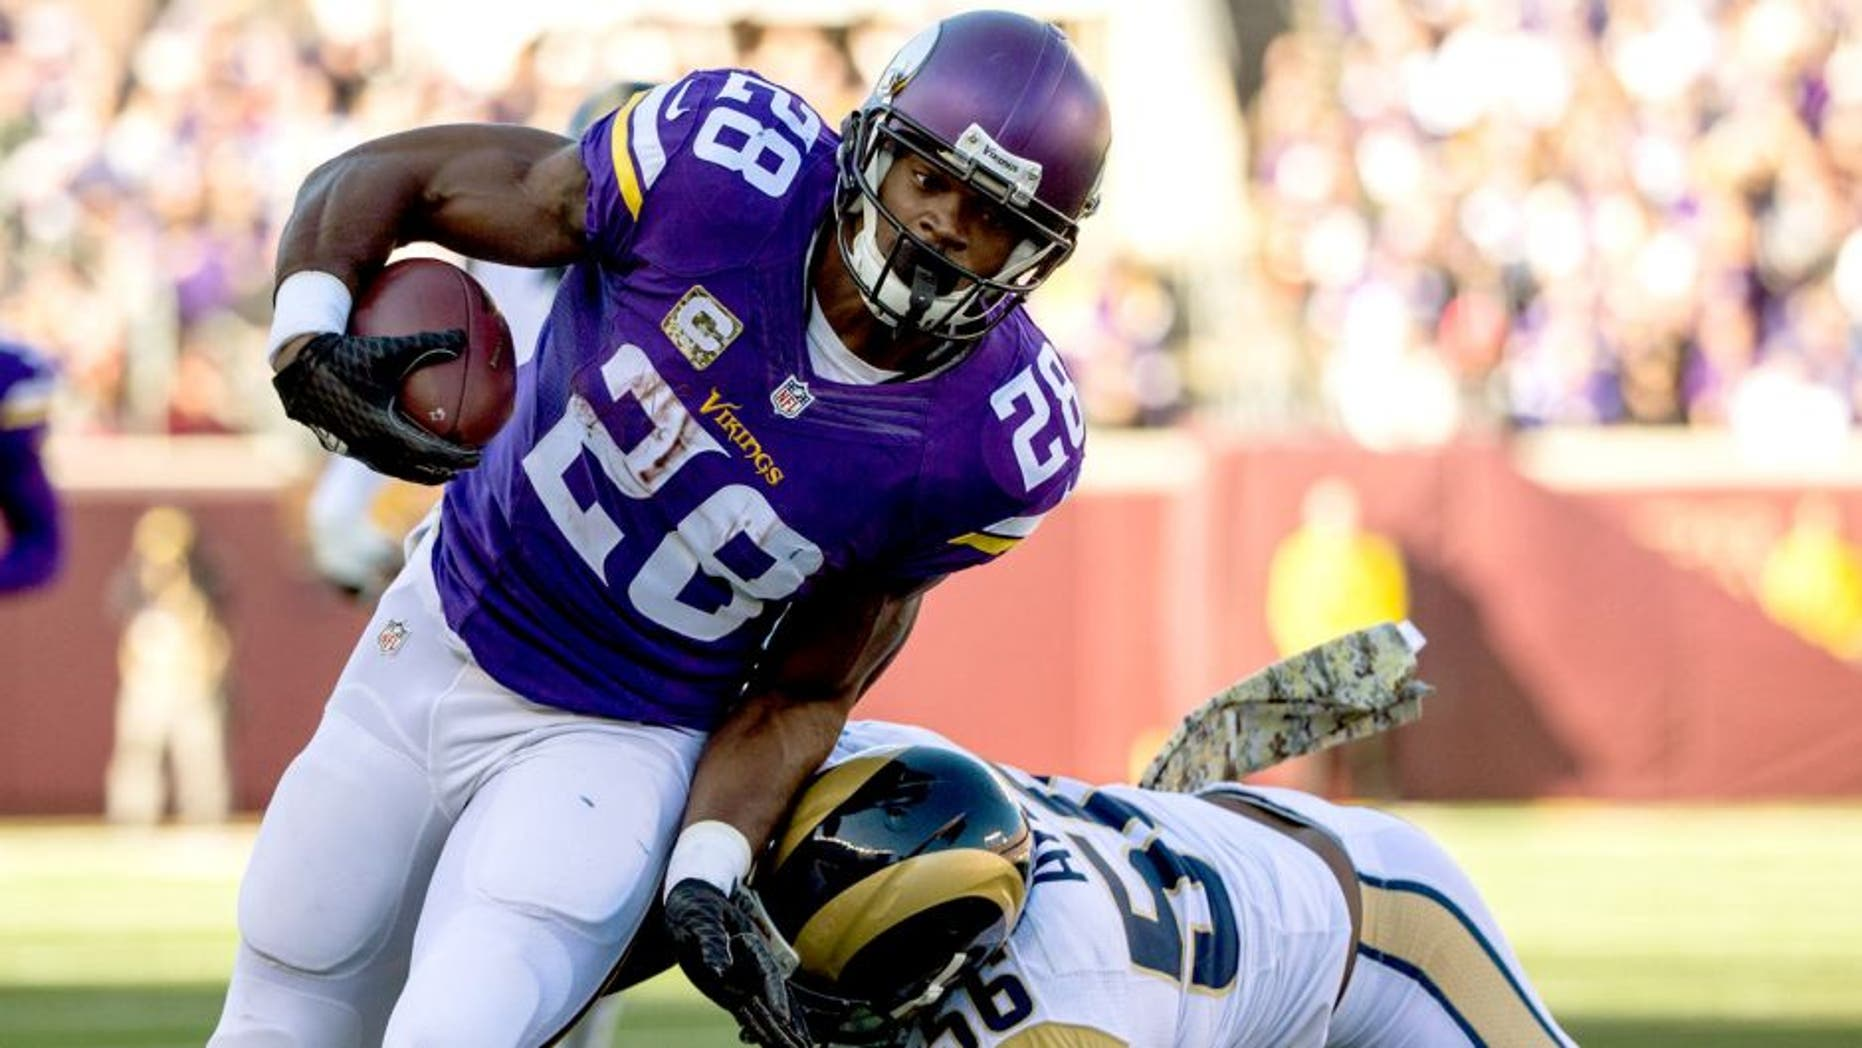 Nov 8, 2015; Minneapolis, MN, USA; Minnesota Vikings running back Adrian Peterson (28) carries the ball during the first quarter against the St. Louis Rams at TCF Bank Stadium. Mandatory Credit: Brace Hemmelgarn-USA TODAY Sports